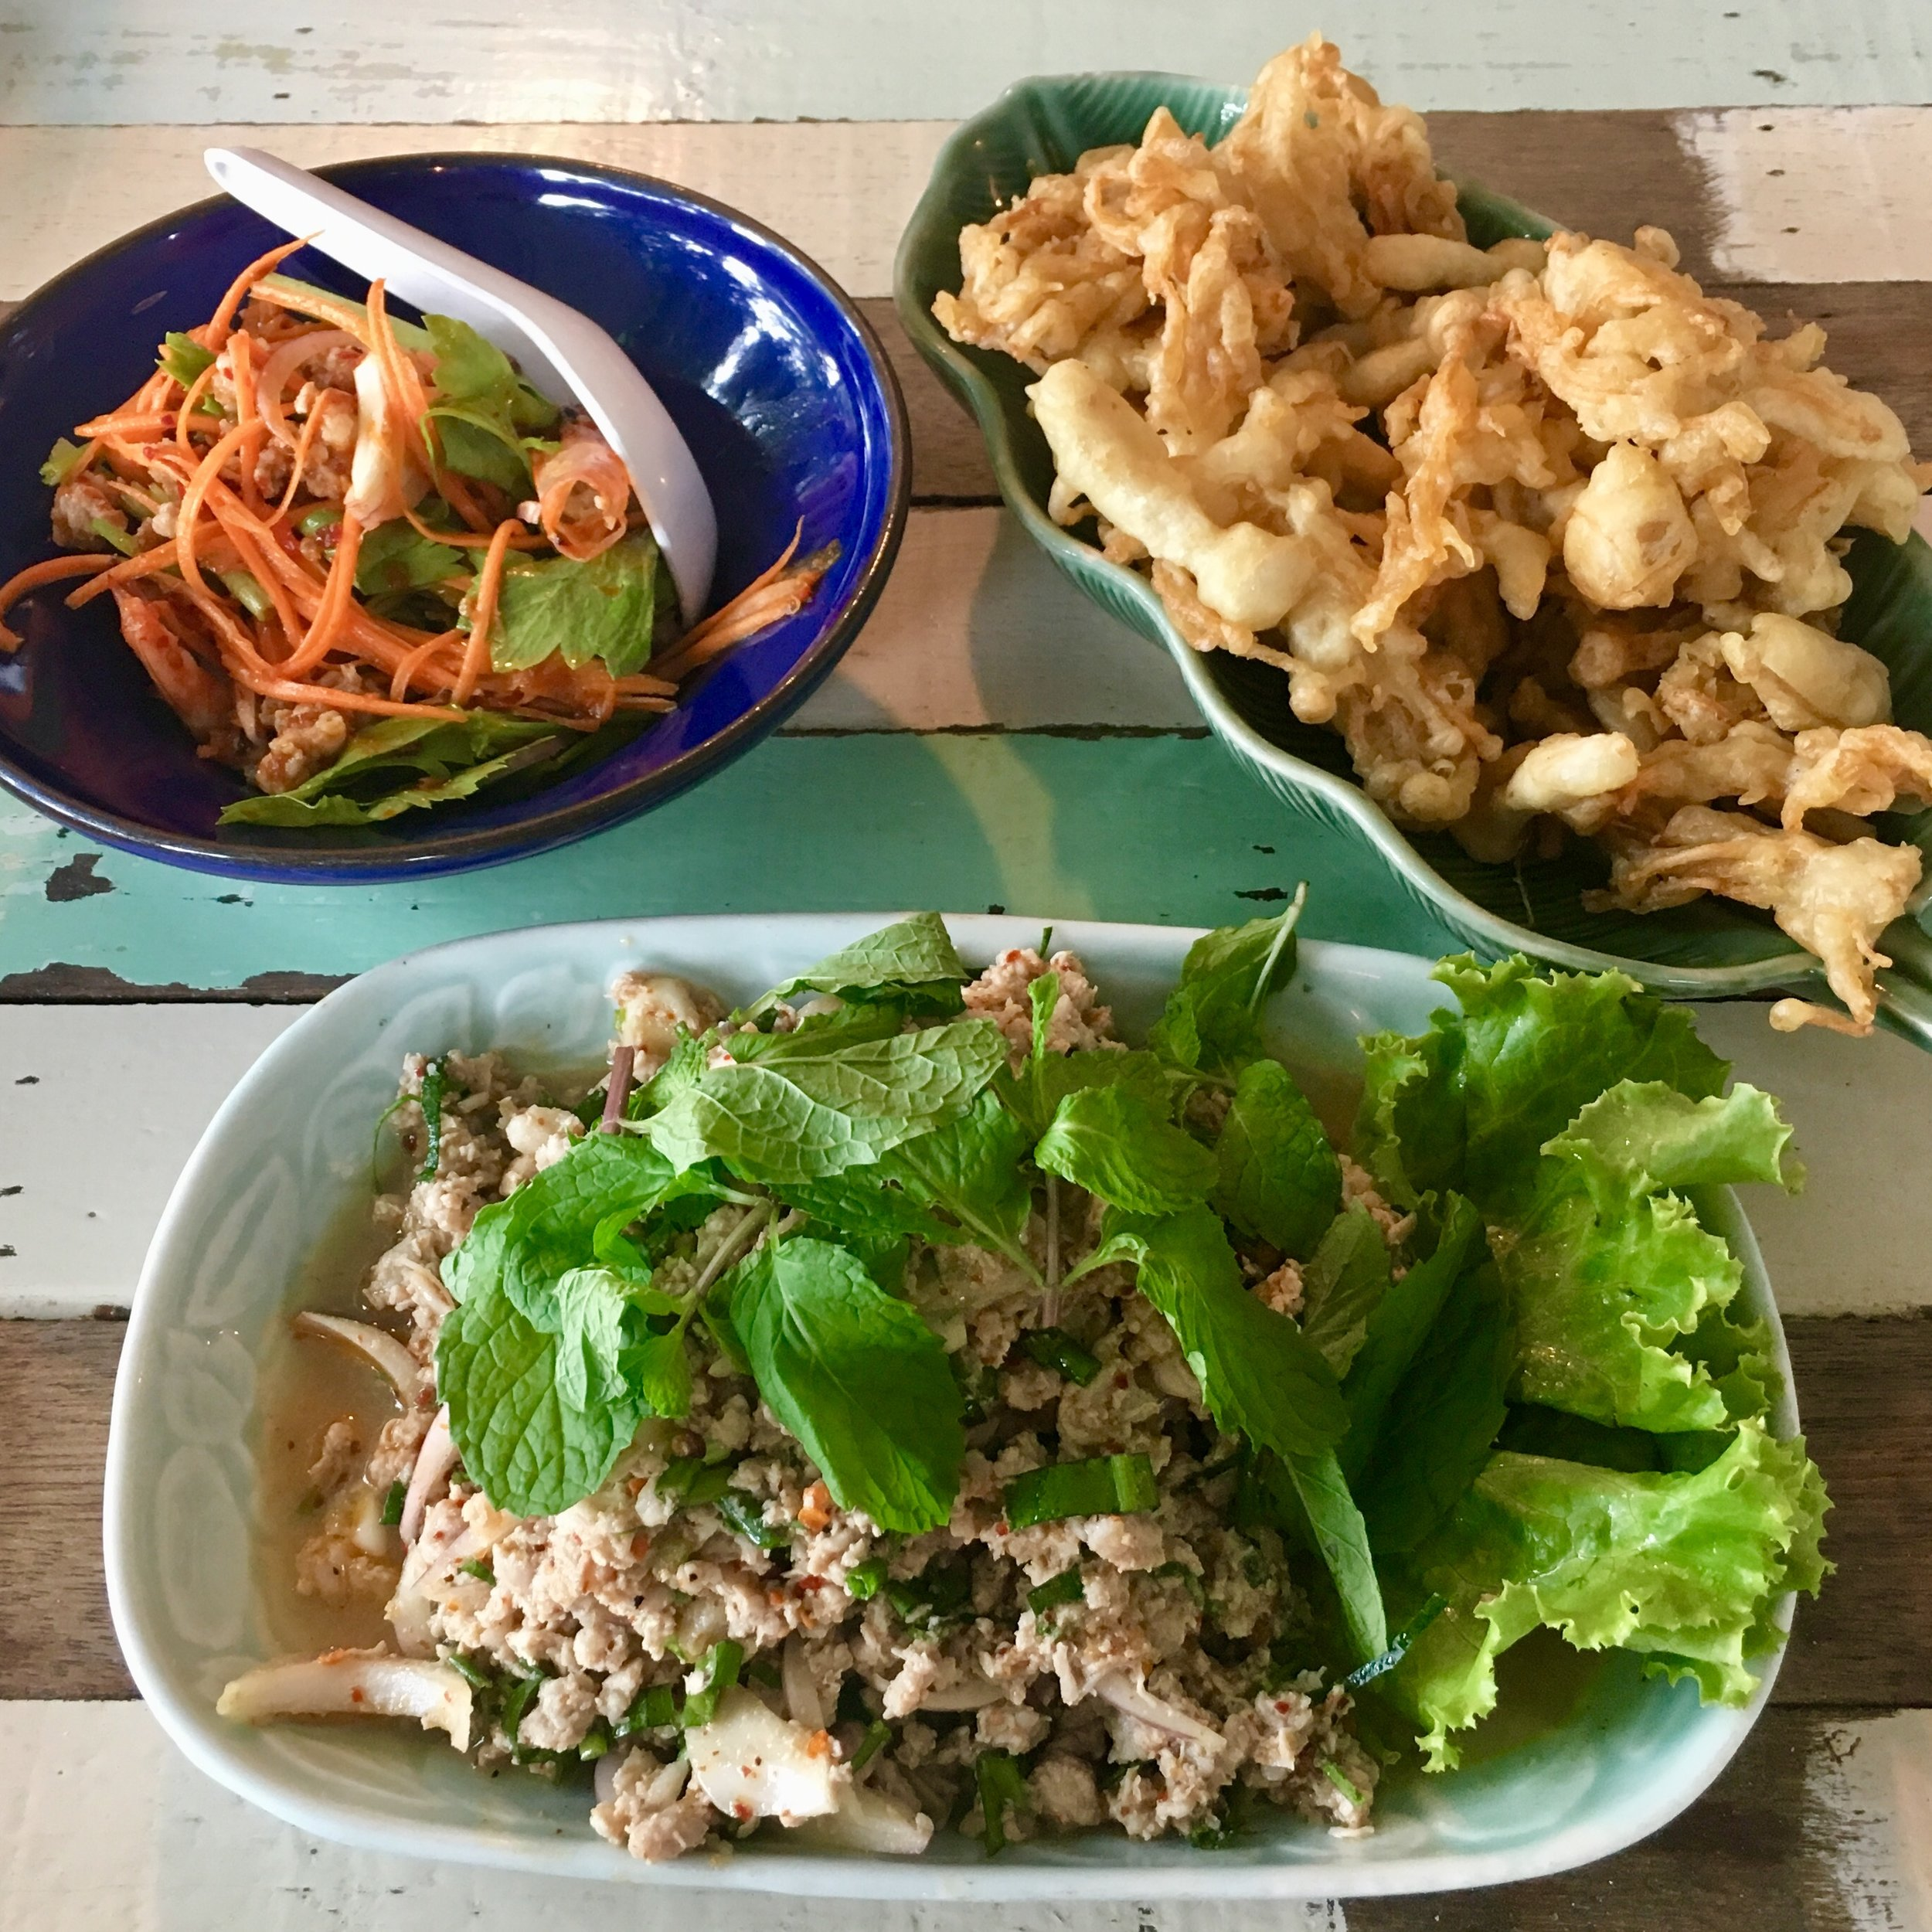 Yam Hed Tod (fried mushrooms w/ sweet & sour veggies) and Laab Moo from a spot in Lop Buri